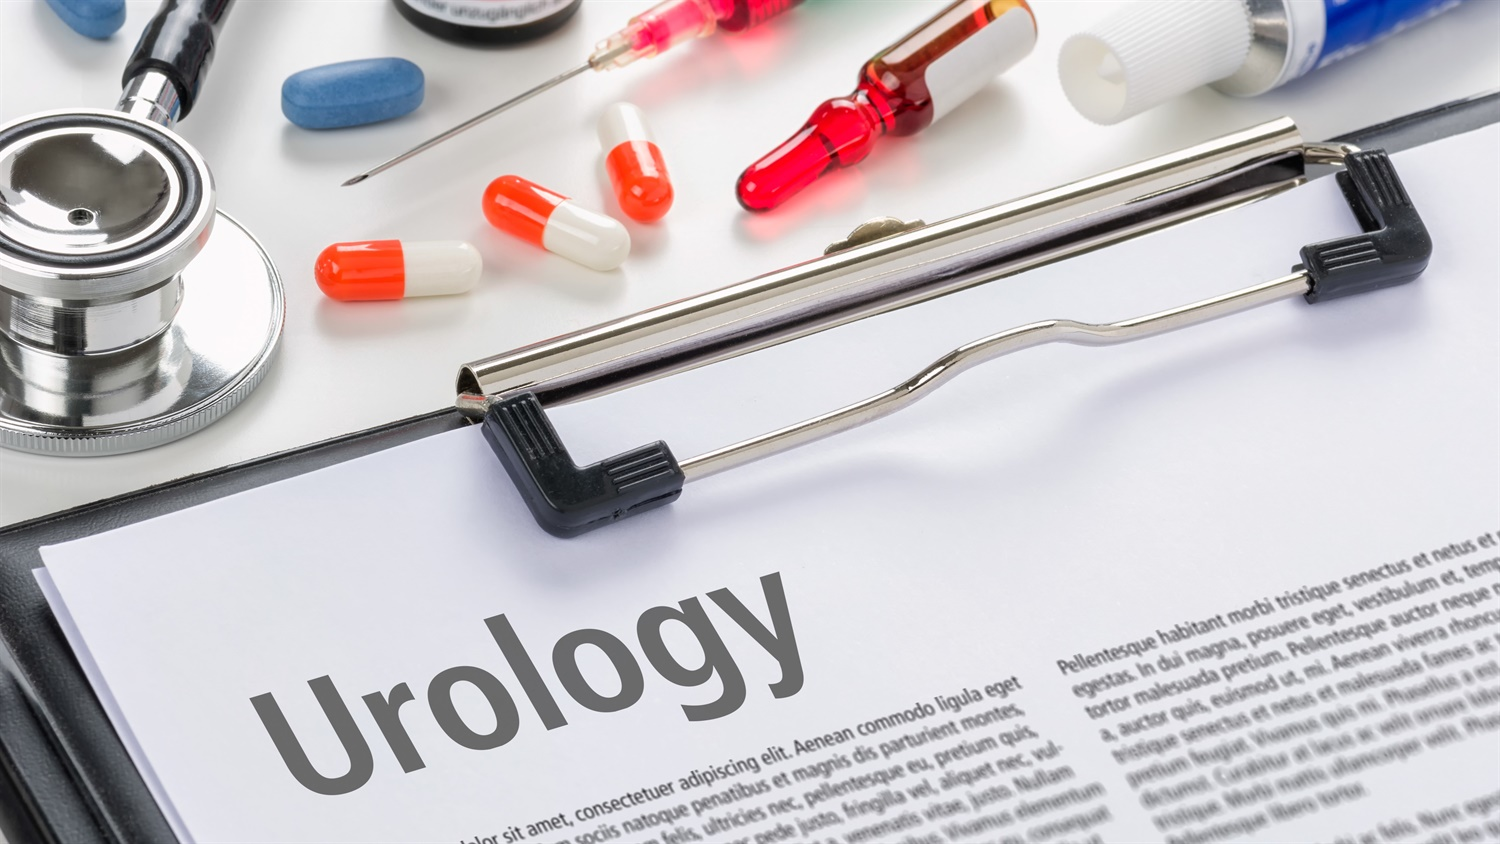 Urology nurses are leading the way in adoption of prostate cancer biopsy technique